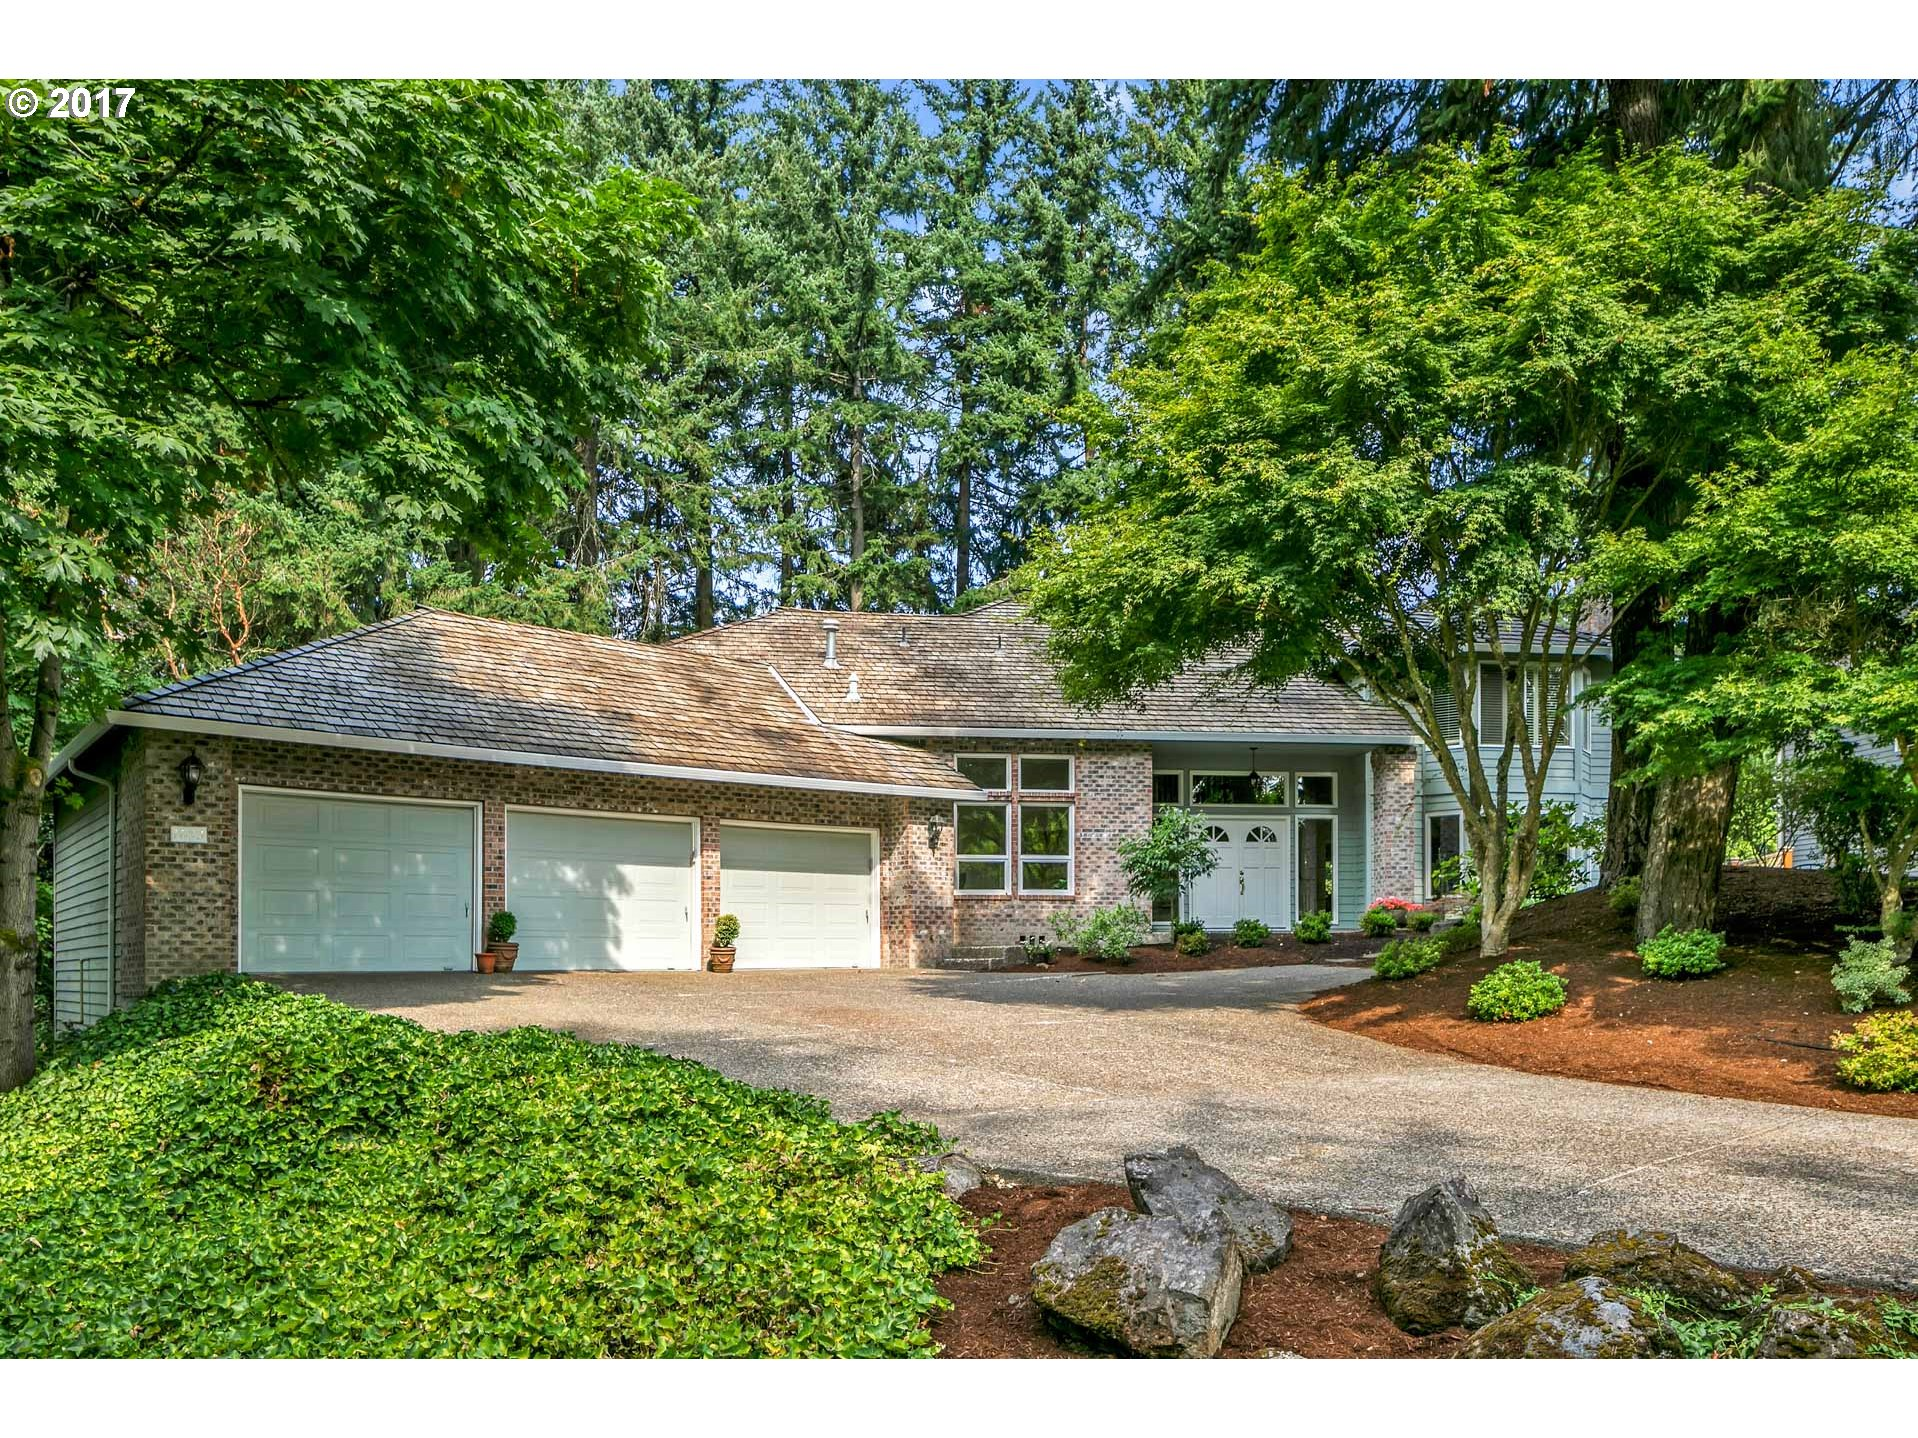 1075 SCHUKART LN, Lake Oswego, OR 97034